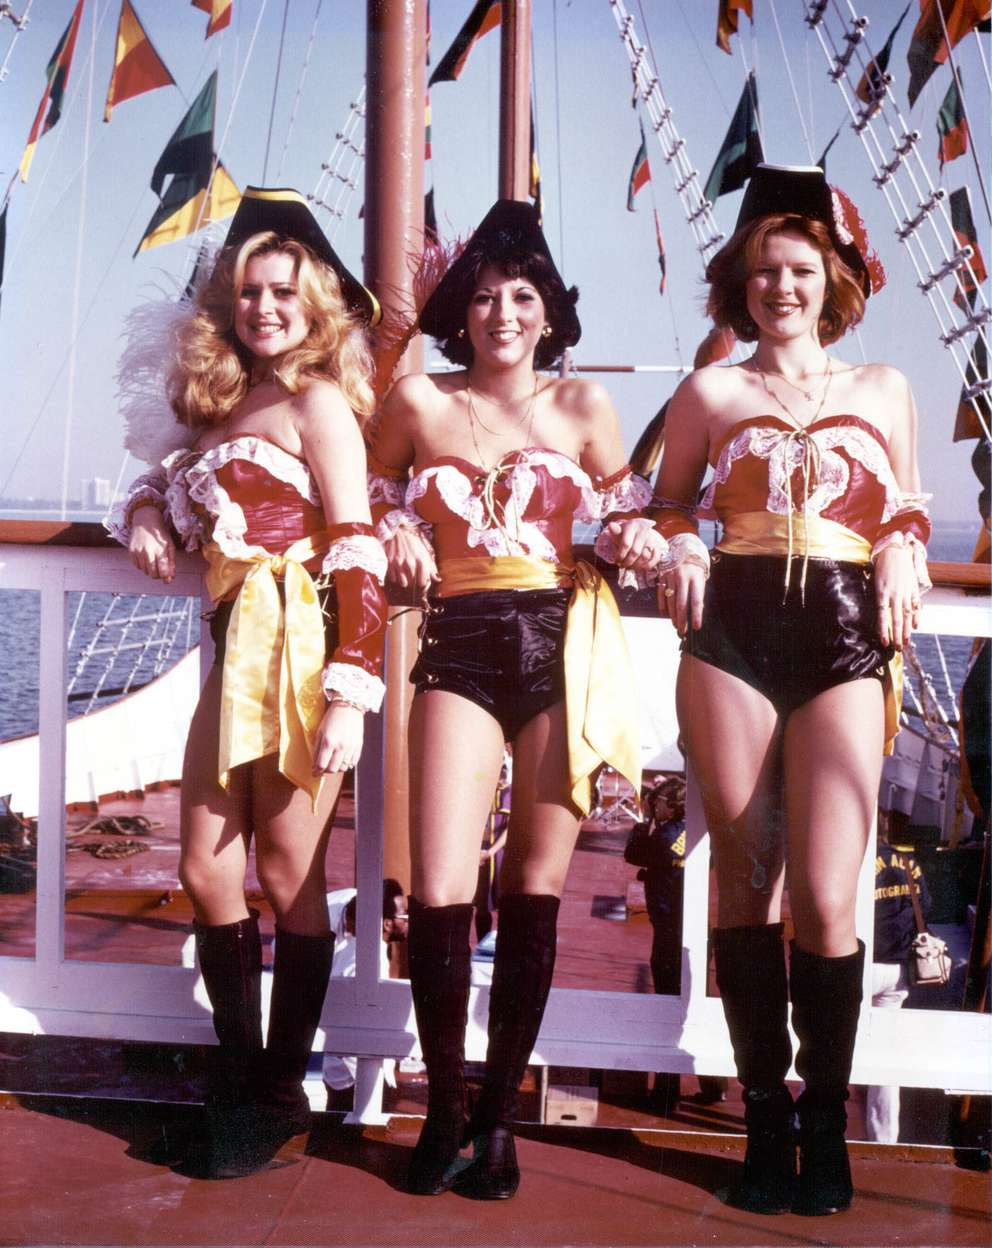 Doria Gomez, Elena DelRio and Linda Gomez pose in 1979 during the 75th anniversary of Gasparilla. [Steve Baird | Times archives]